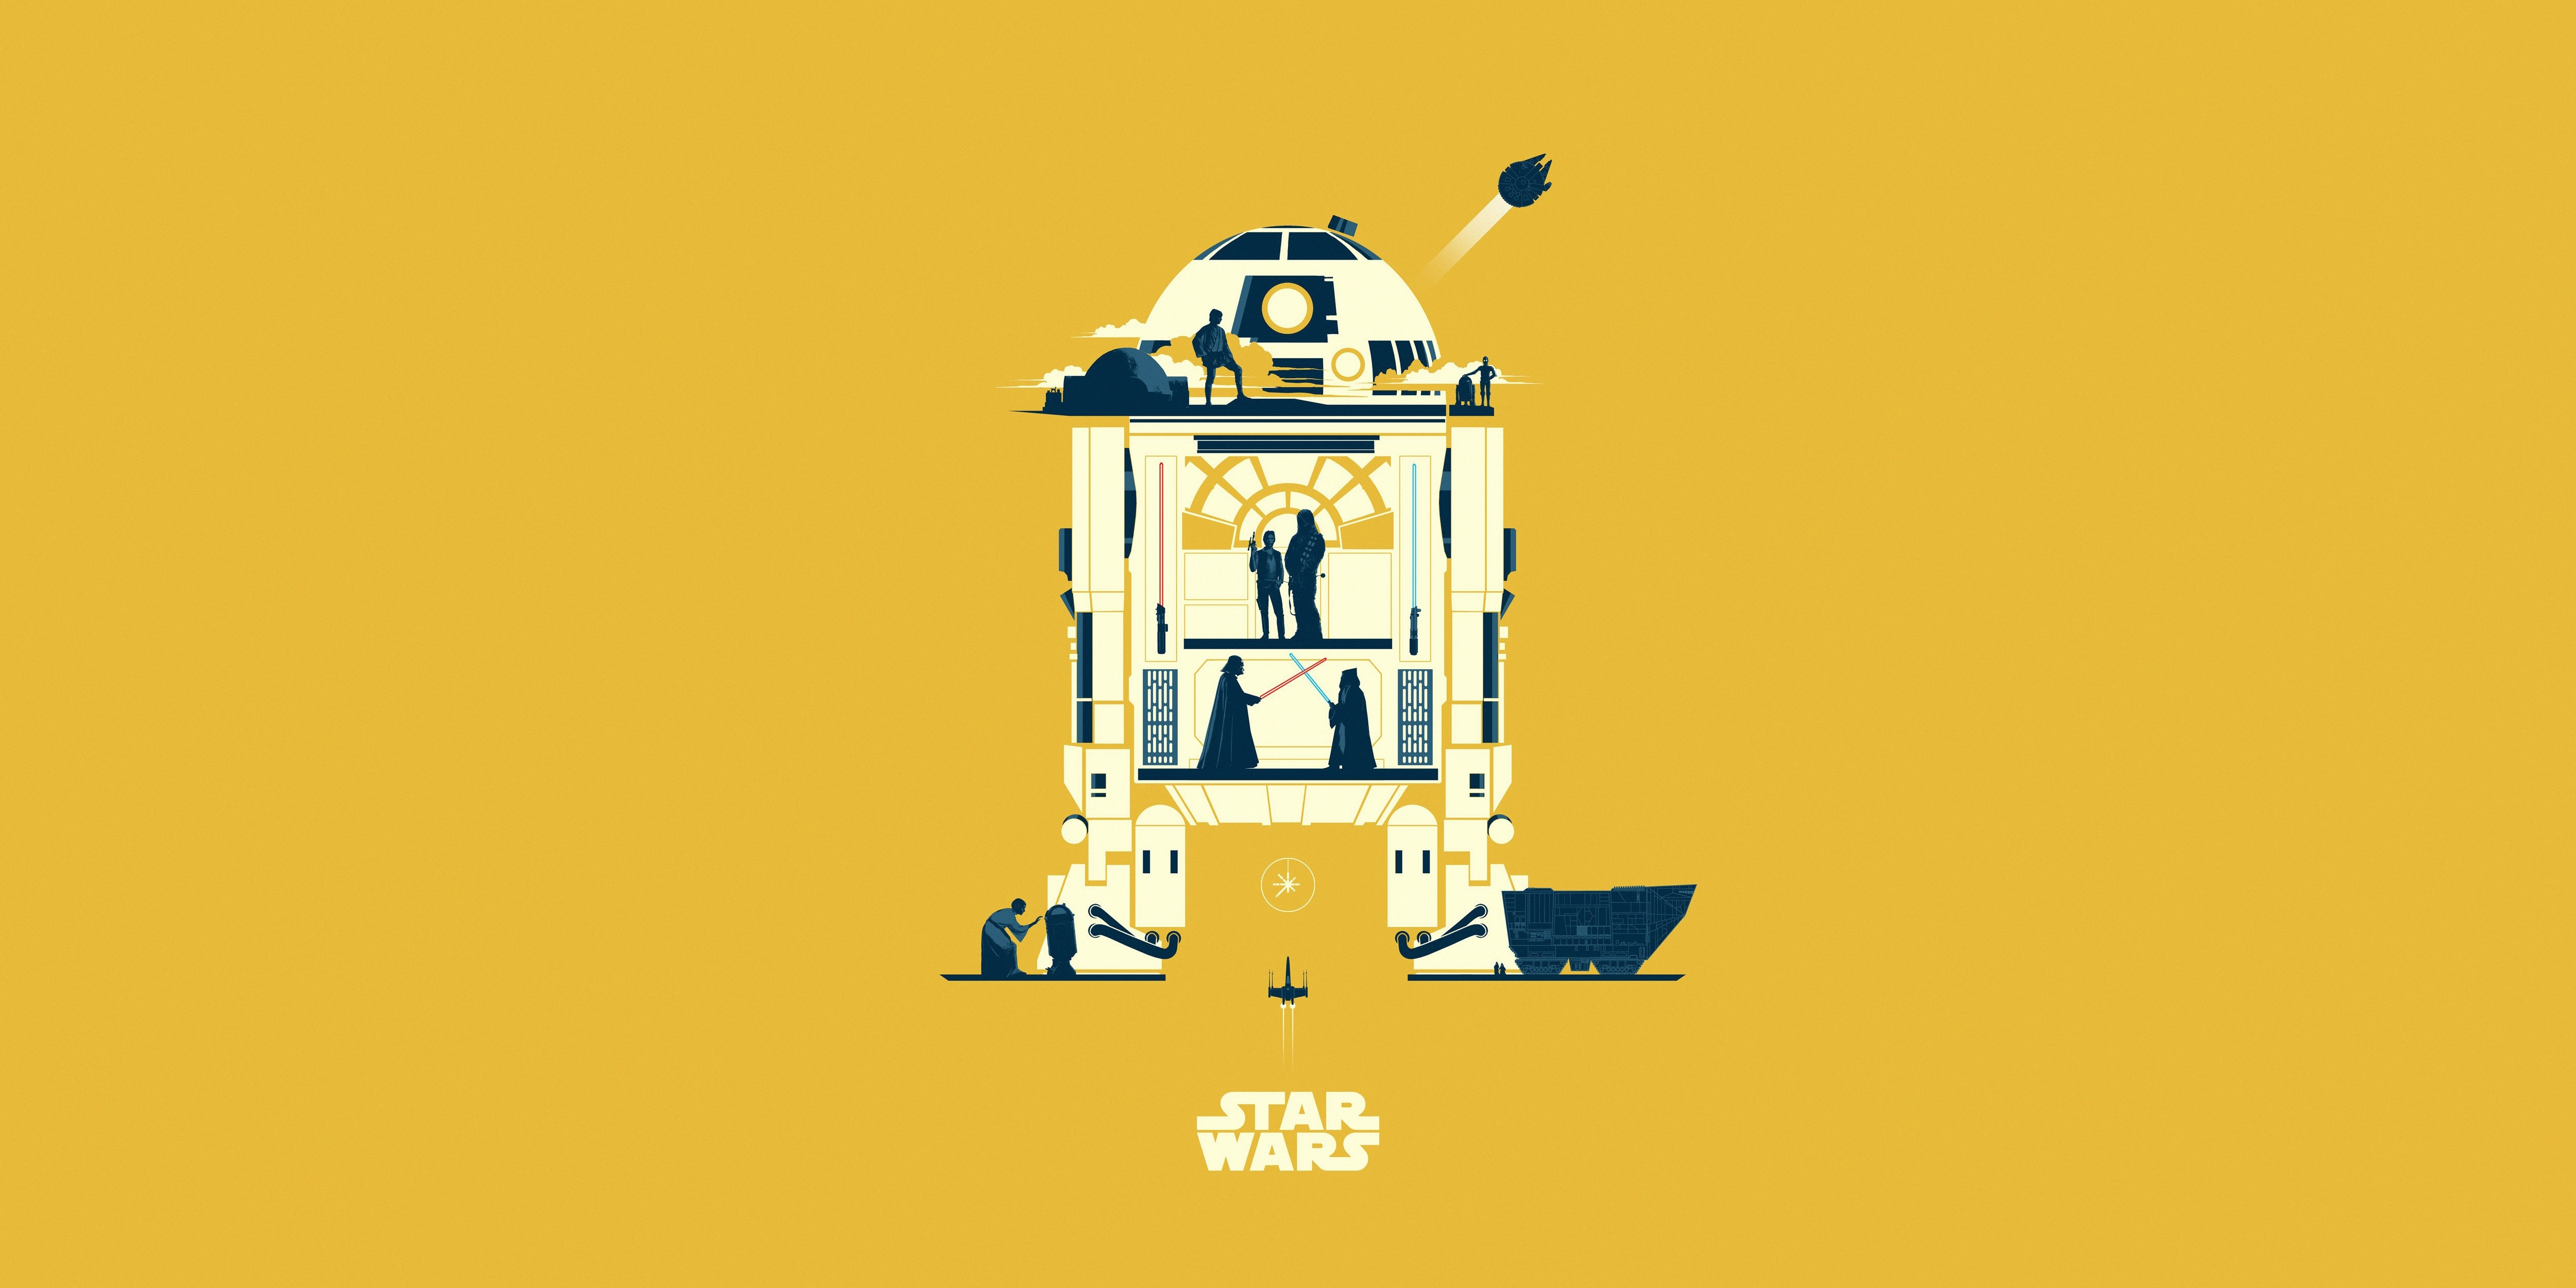 R2 D2 Star Wars Minimalist Wallpaper Hd Minimalist 4k Wallpapers Images Photos And Background